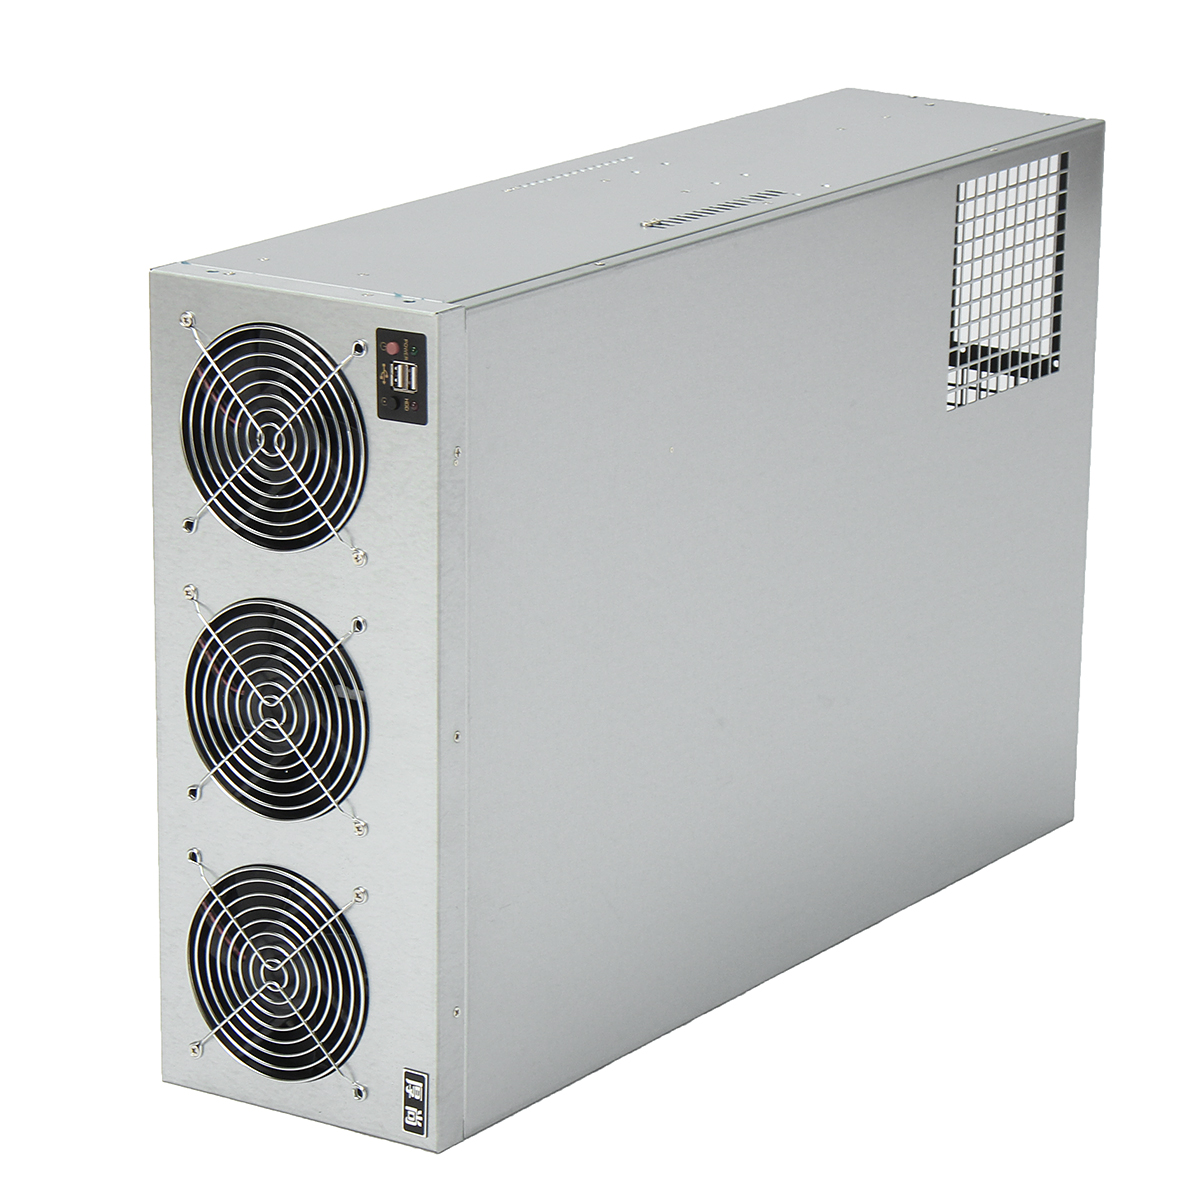 Crypto Coin Open Air Mining Frame Rig Graphics Case For 8 GPU ETH BTC Ethereum